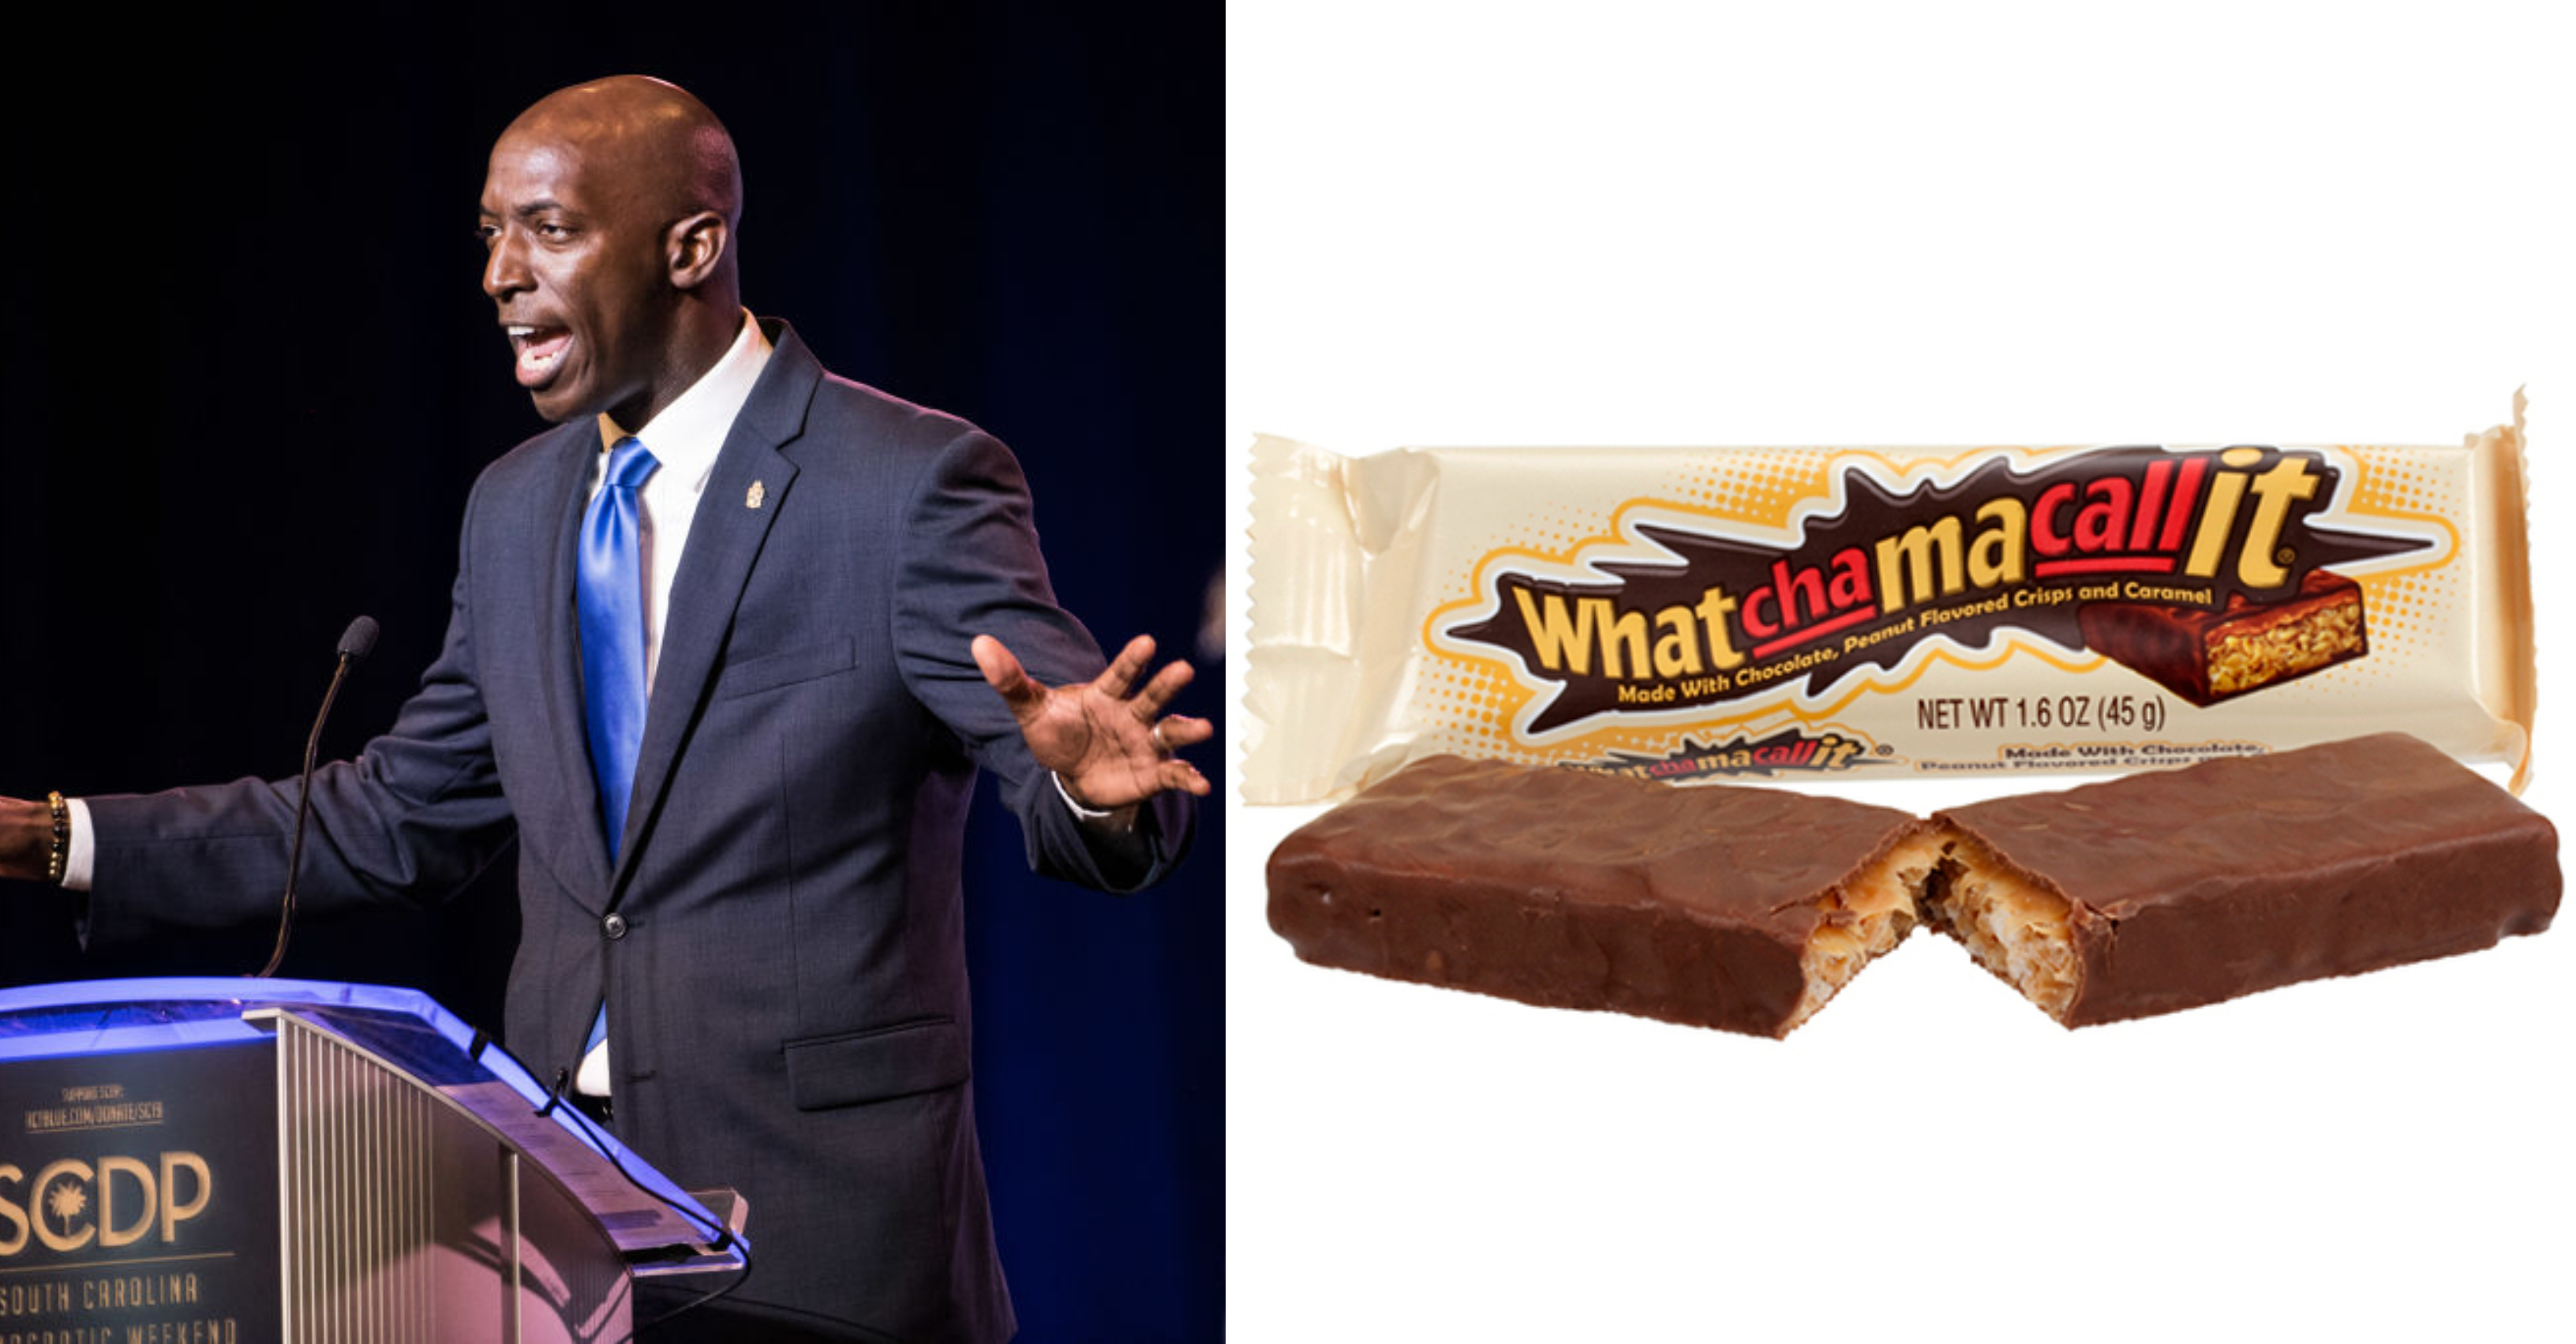 Wayne Messam – Whatchamacallit